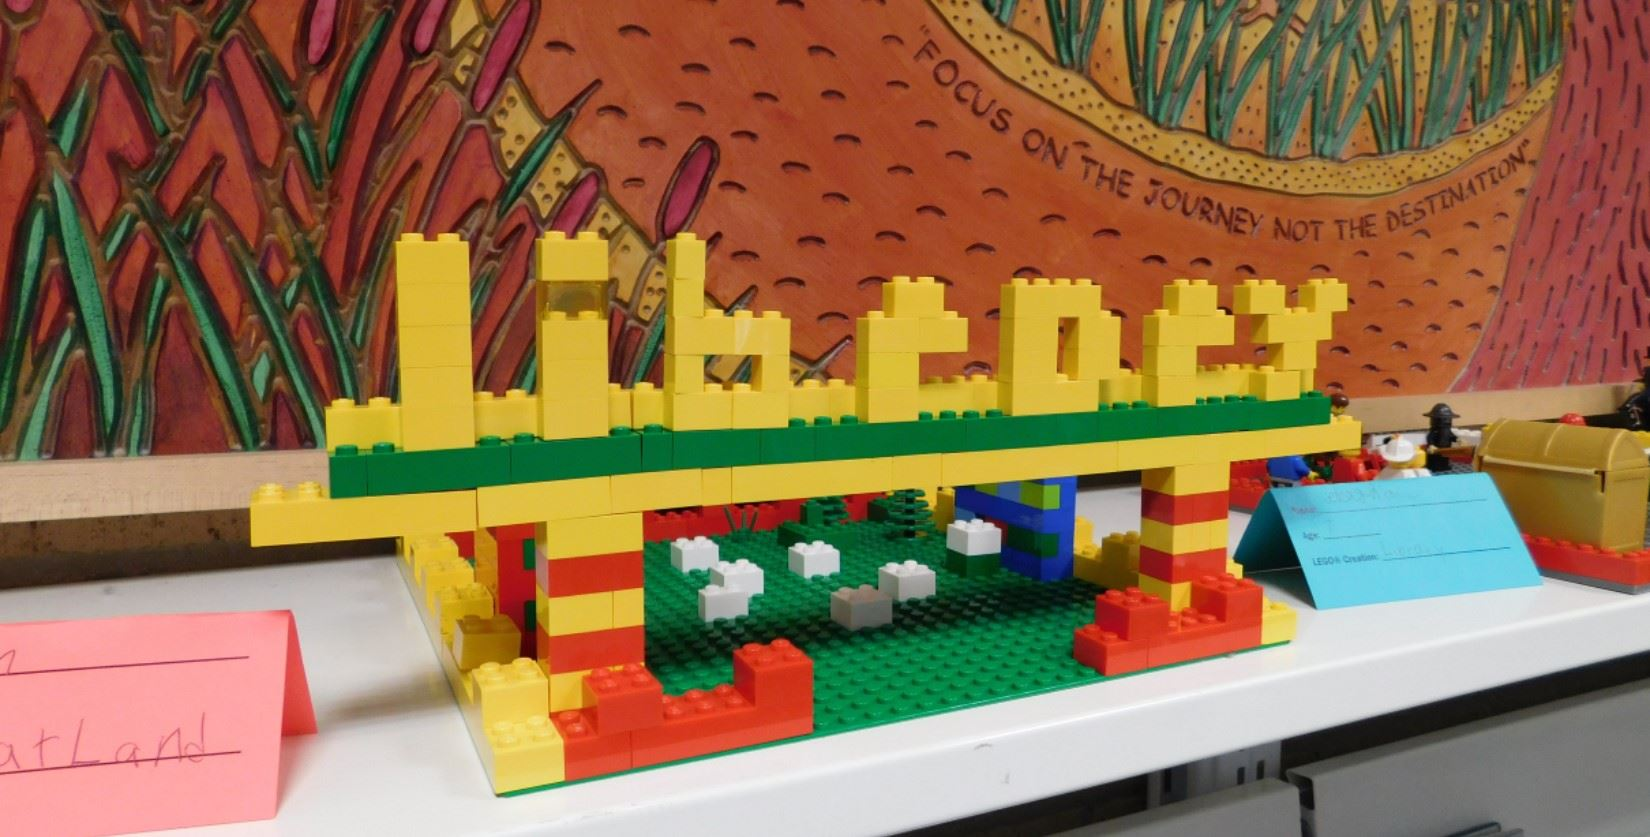 Lego creation spelling Library